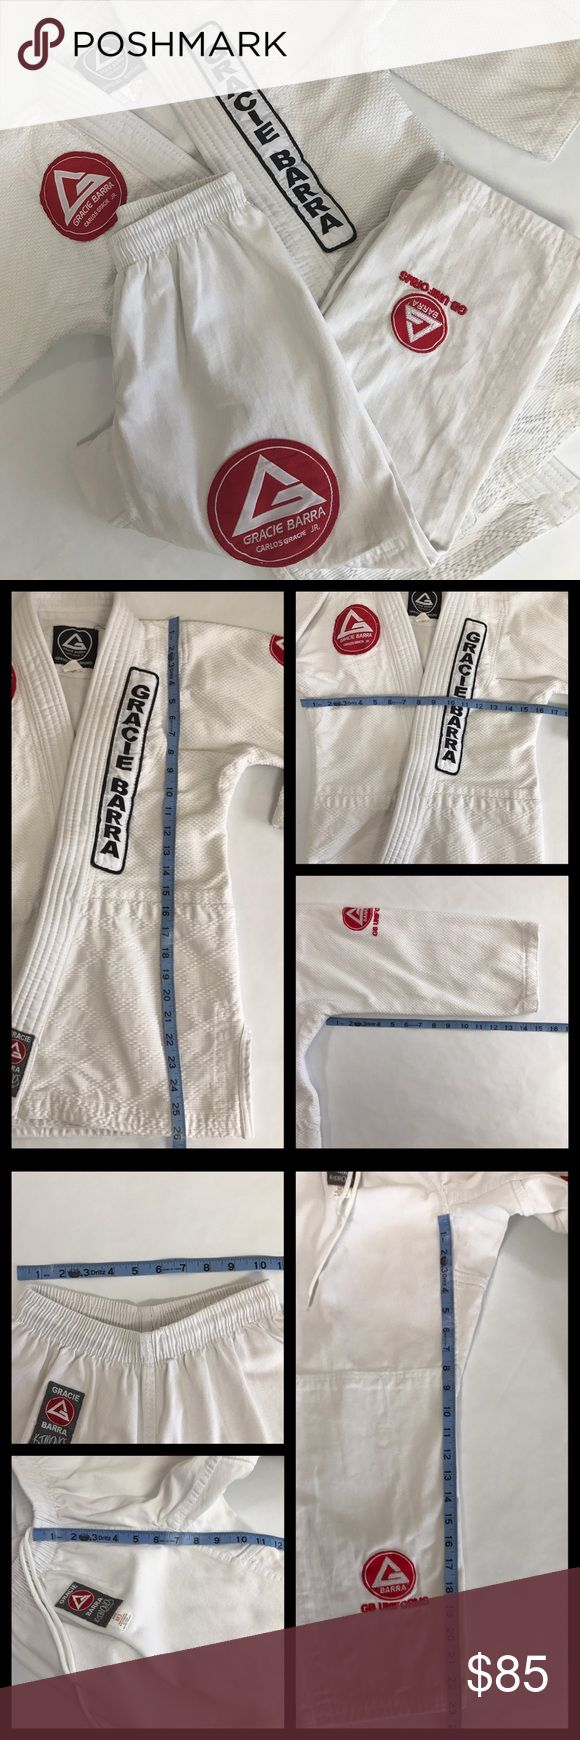 Boys Gracie Barra Jiu Jitsu/MMA Kimono / Gi Official Gracie Barra (Carlos Gracie Jr) Gi. Very good condition. My son used for about 2 months. No rips, tears, or stains.   - Please see photos for measurements.  - Leave a comment if you have any questions! Gracie Barra Other